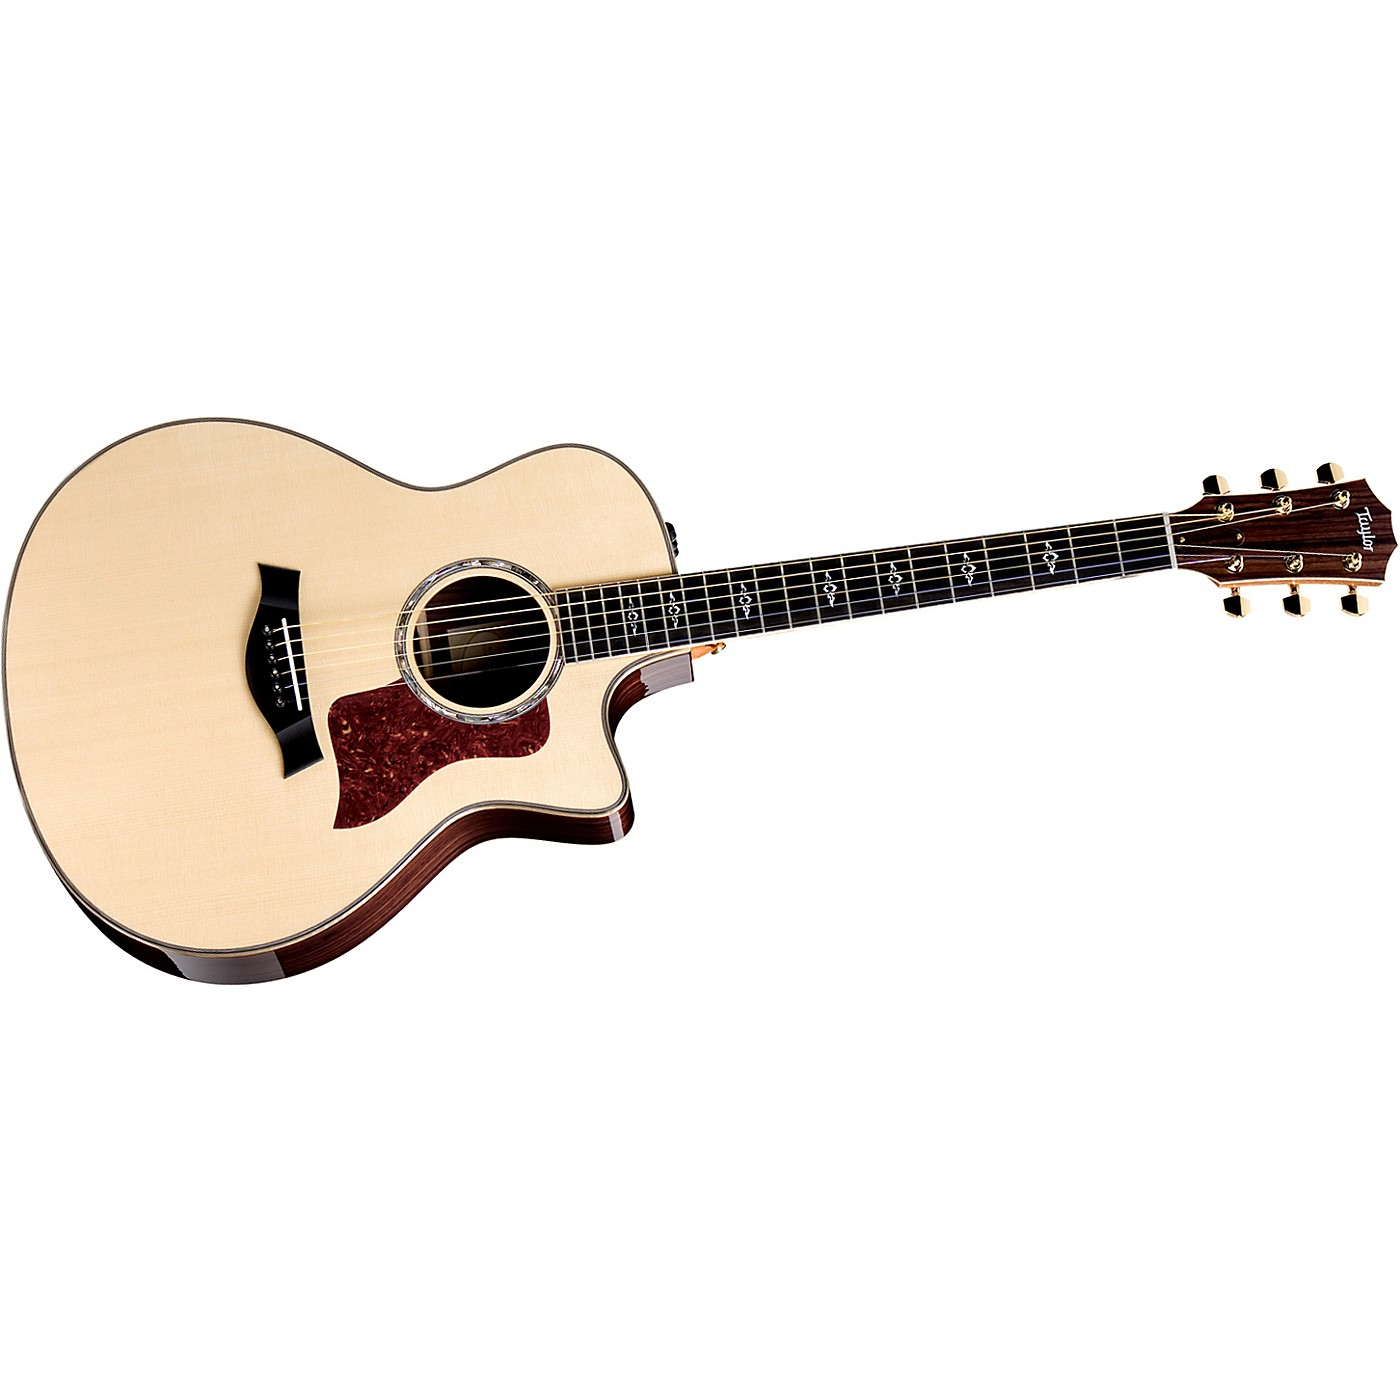 Taylor 816ce Rosewood/Spruce Grand Symphony Acoustic-Electric Guitar thumbnail